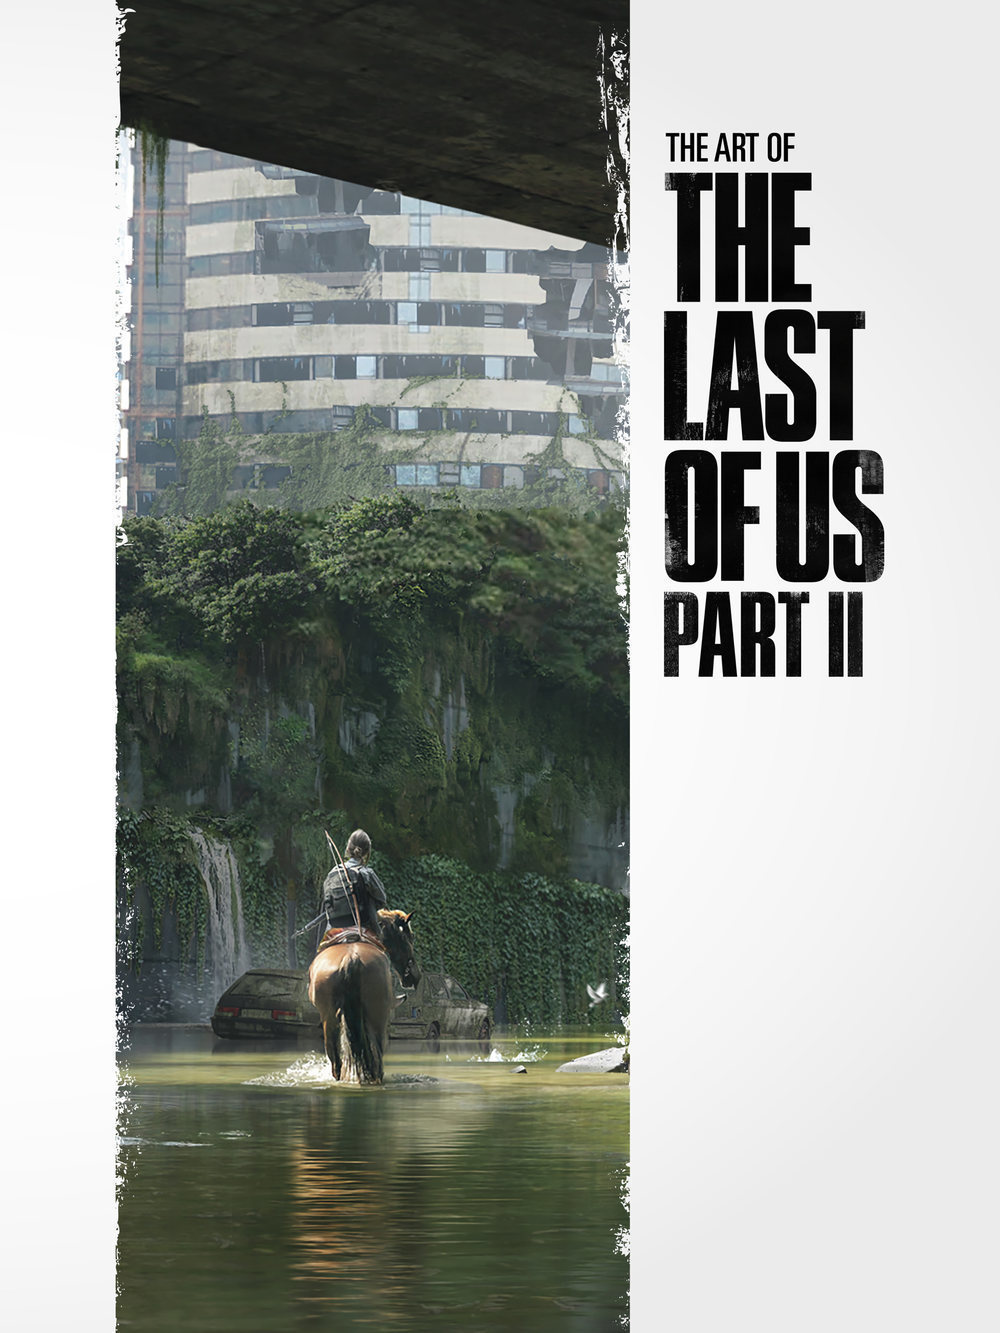 【最后的生还者2(The Last of Us Part II)】 (5).jpg